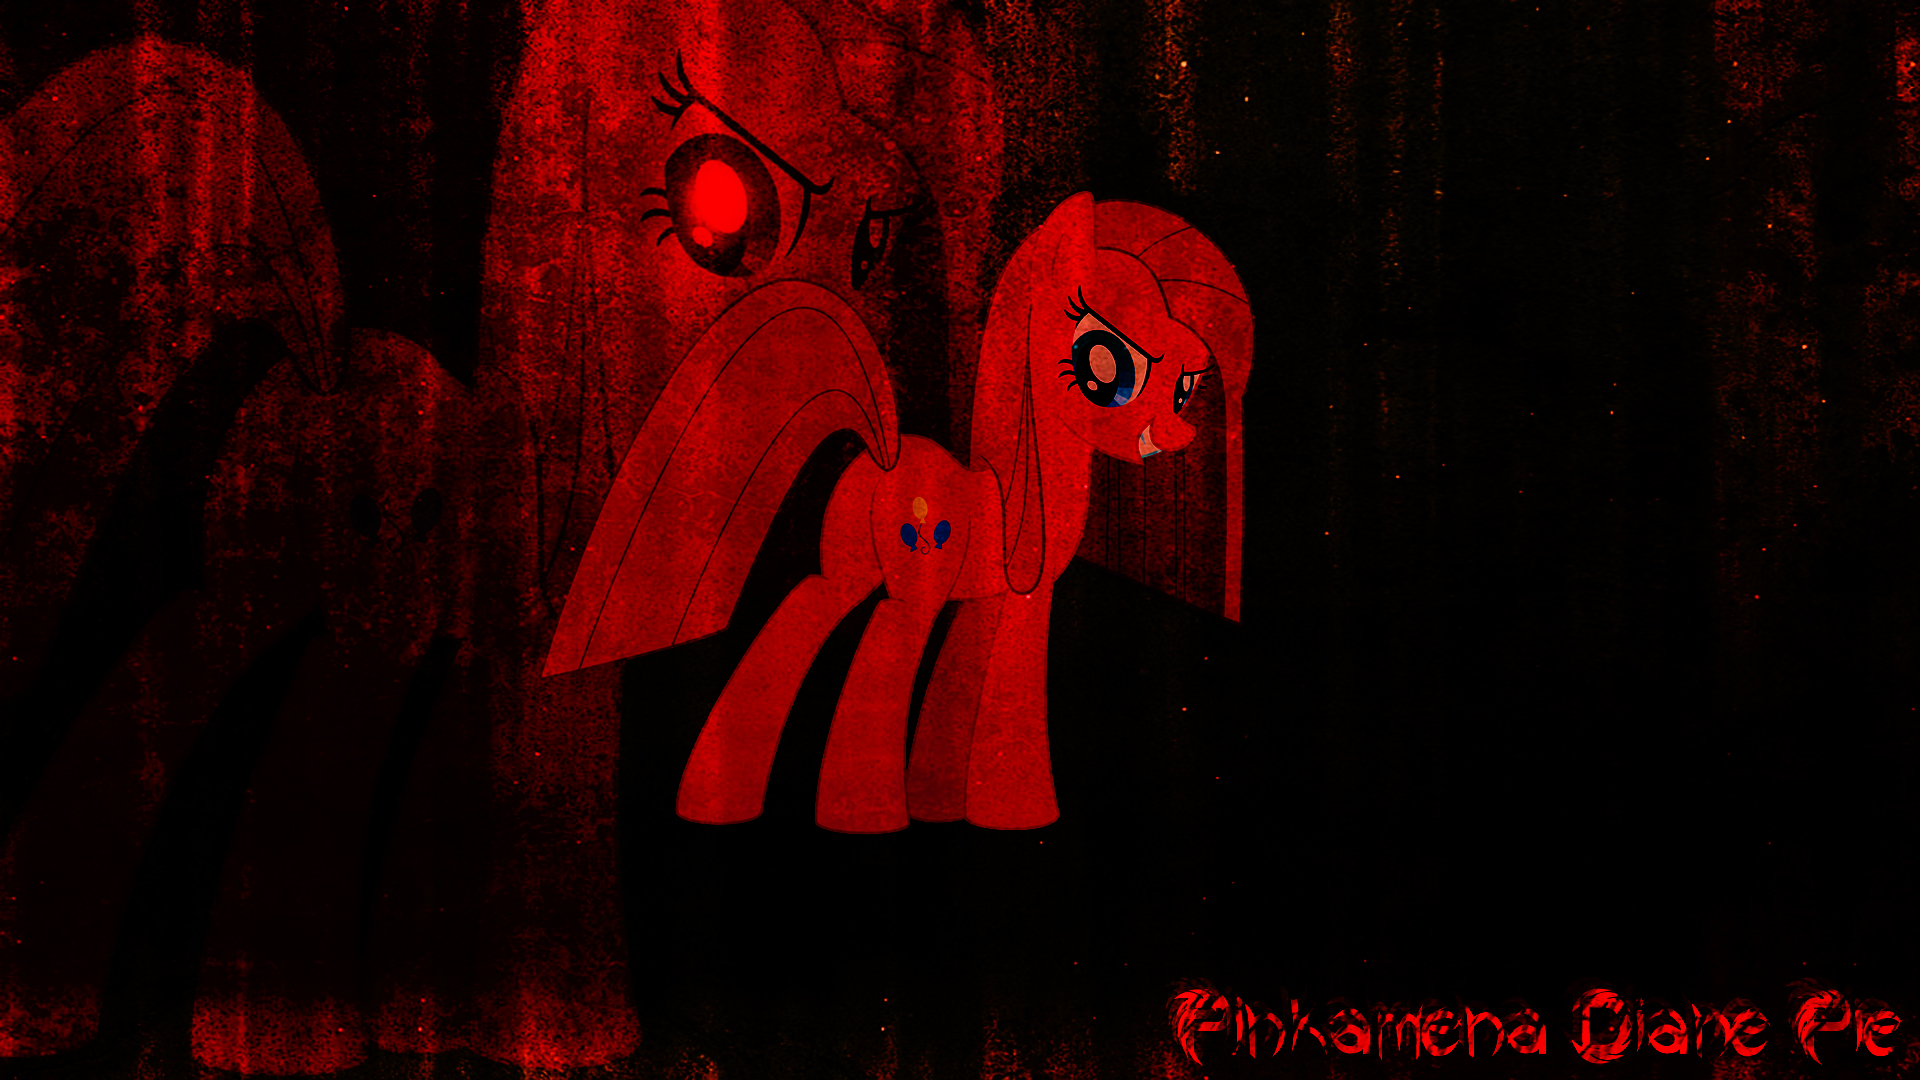 Pinkamena Diane Pie (Wallpaper) by Hardii